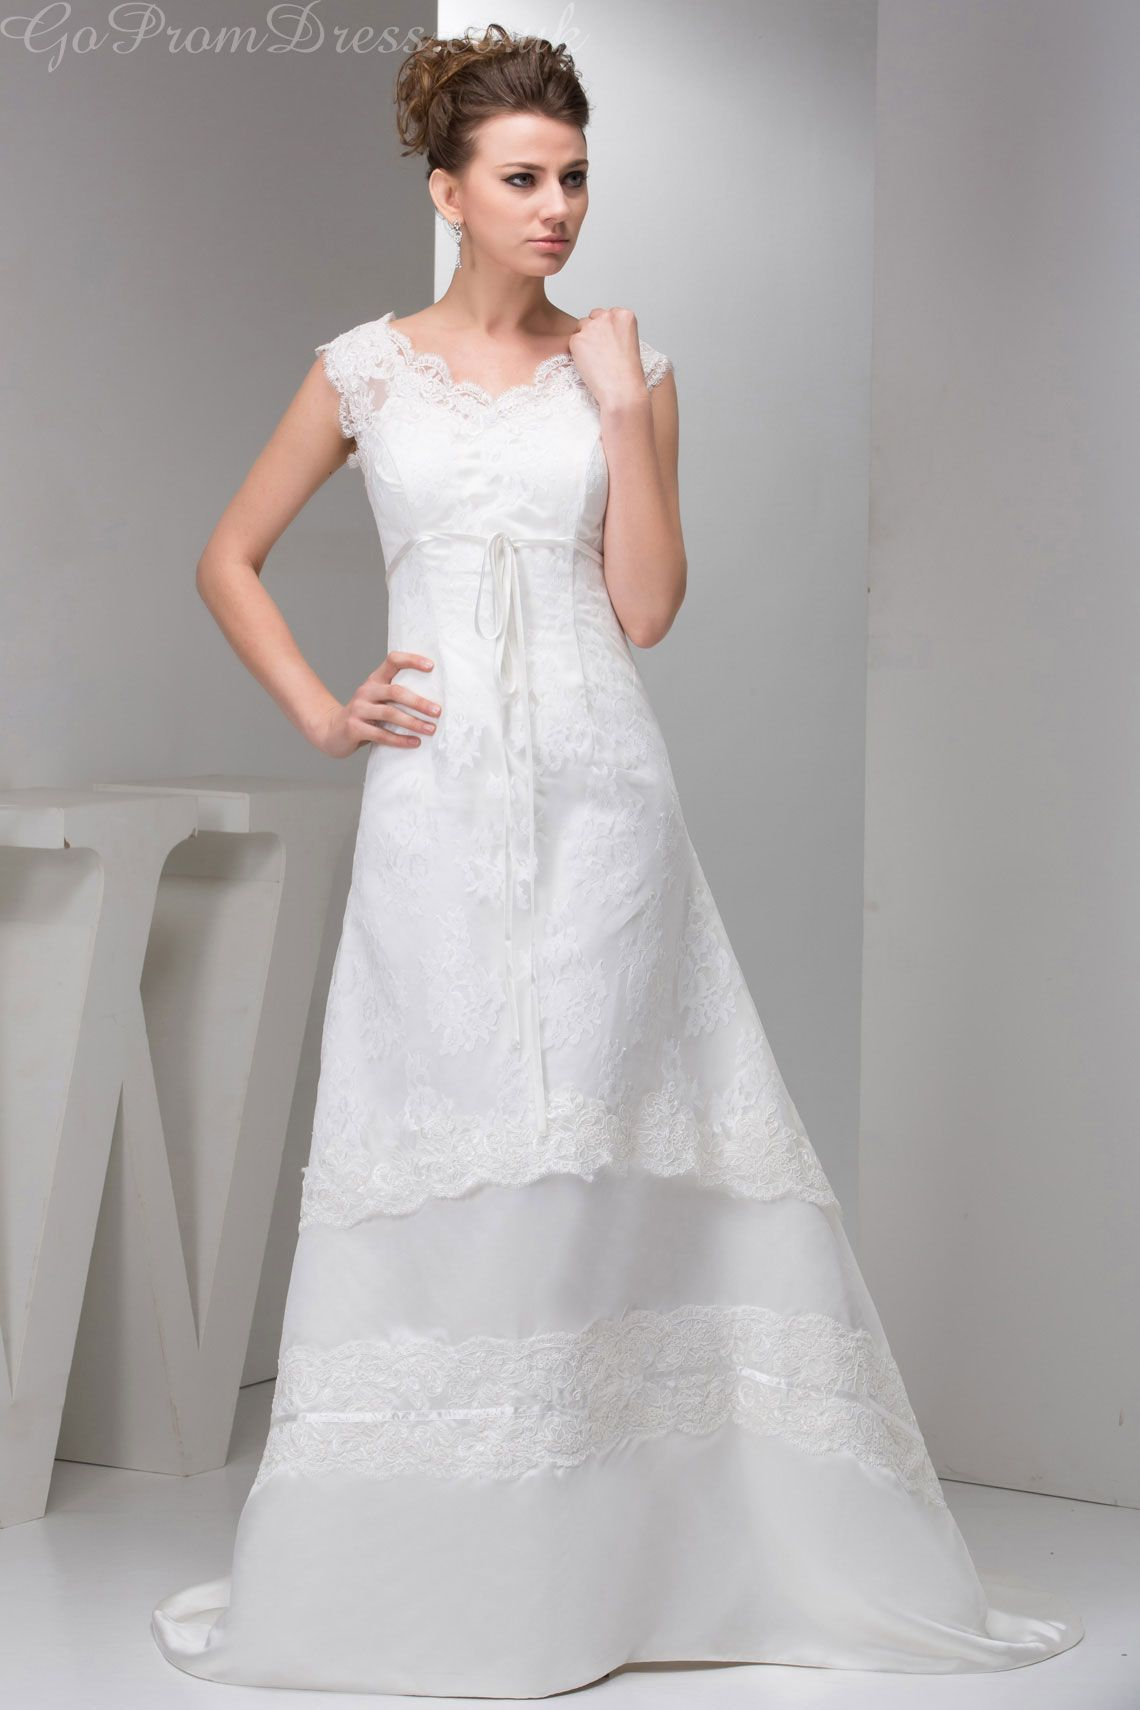 Aline wedding dress  wedding dresswedding dresseswedding dresswedding dresses aline